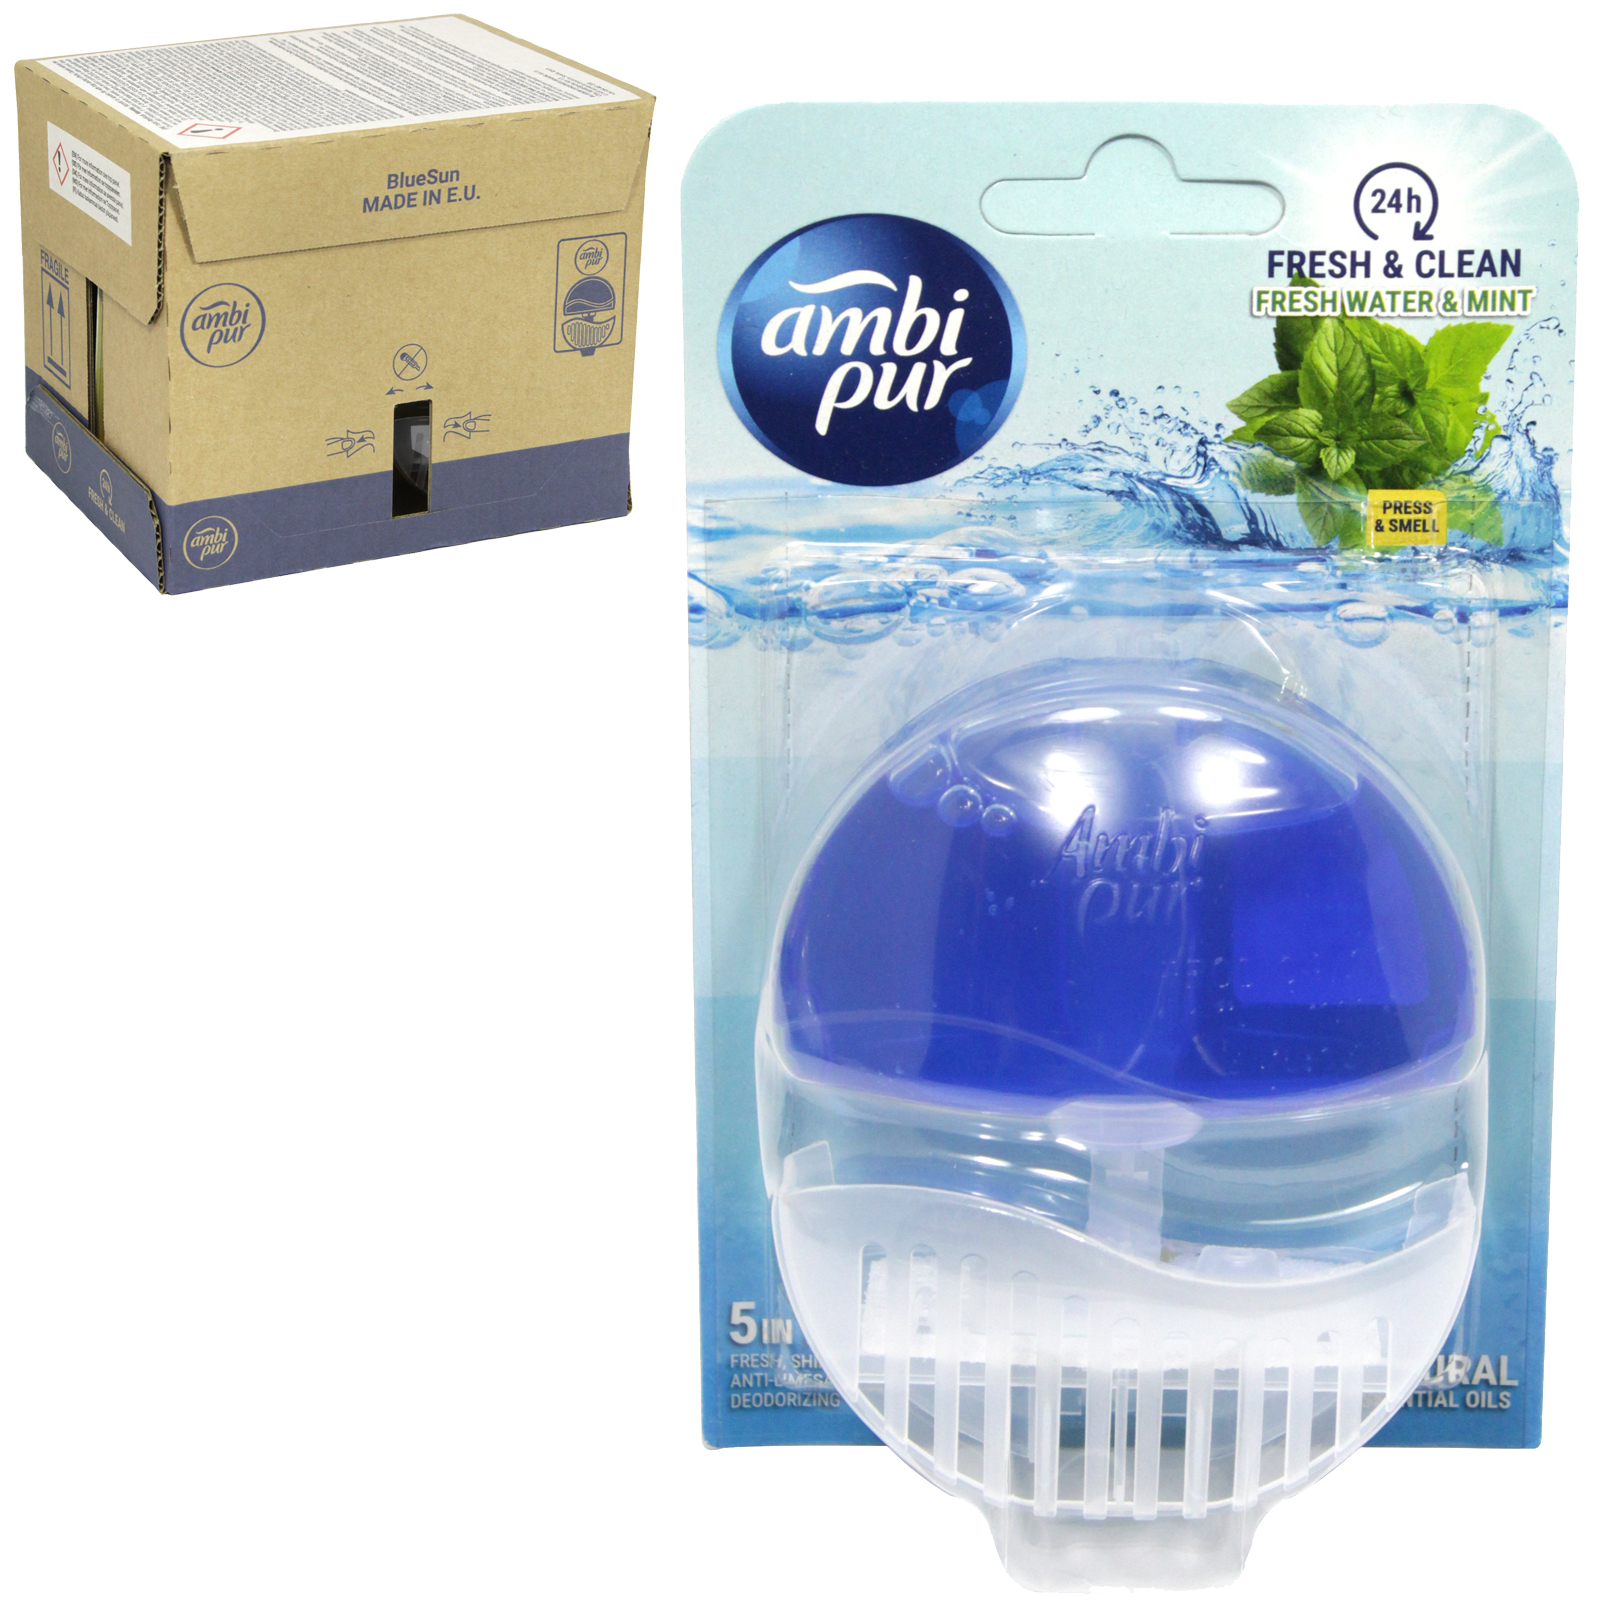 AMBI-PUR 24HR FRESH+CLEAN 5IN1 LIQUID RIM BLOCK 55ML FRESH WATER+MINT X6